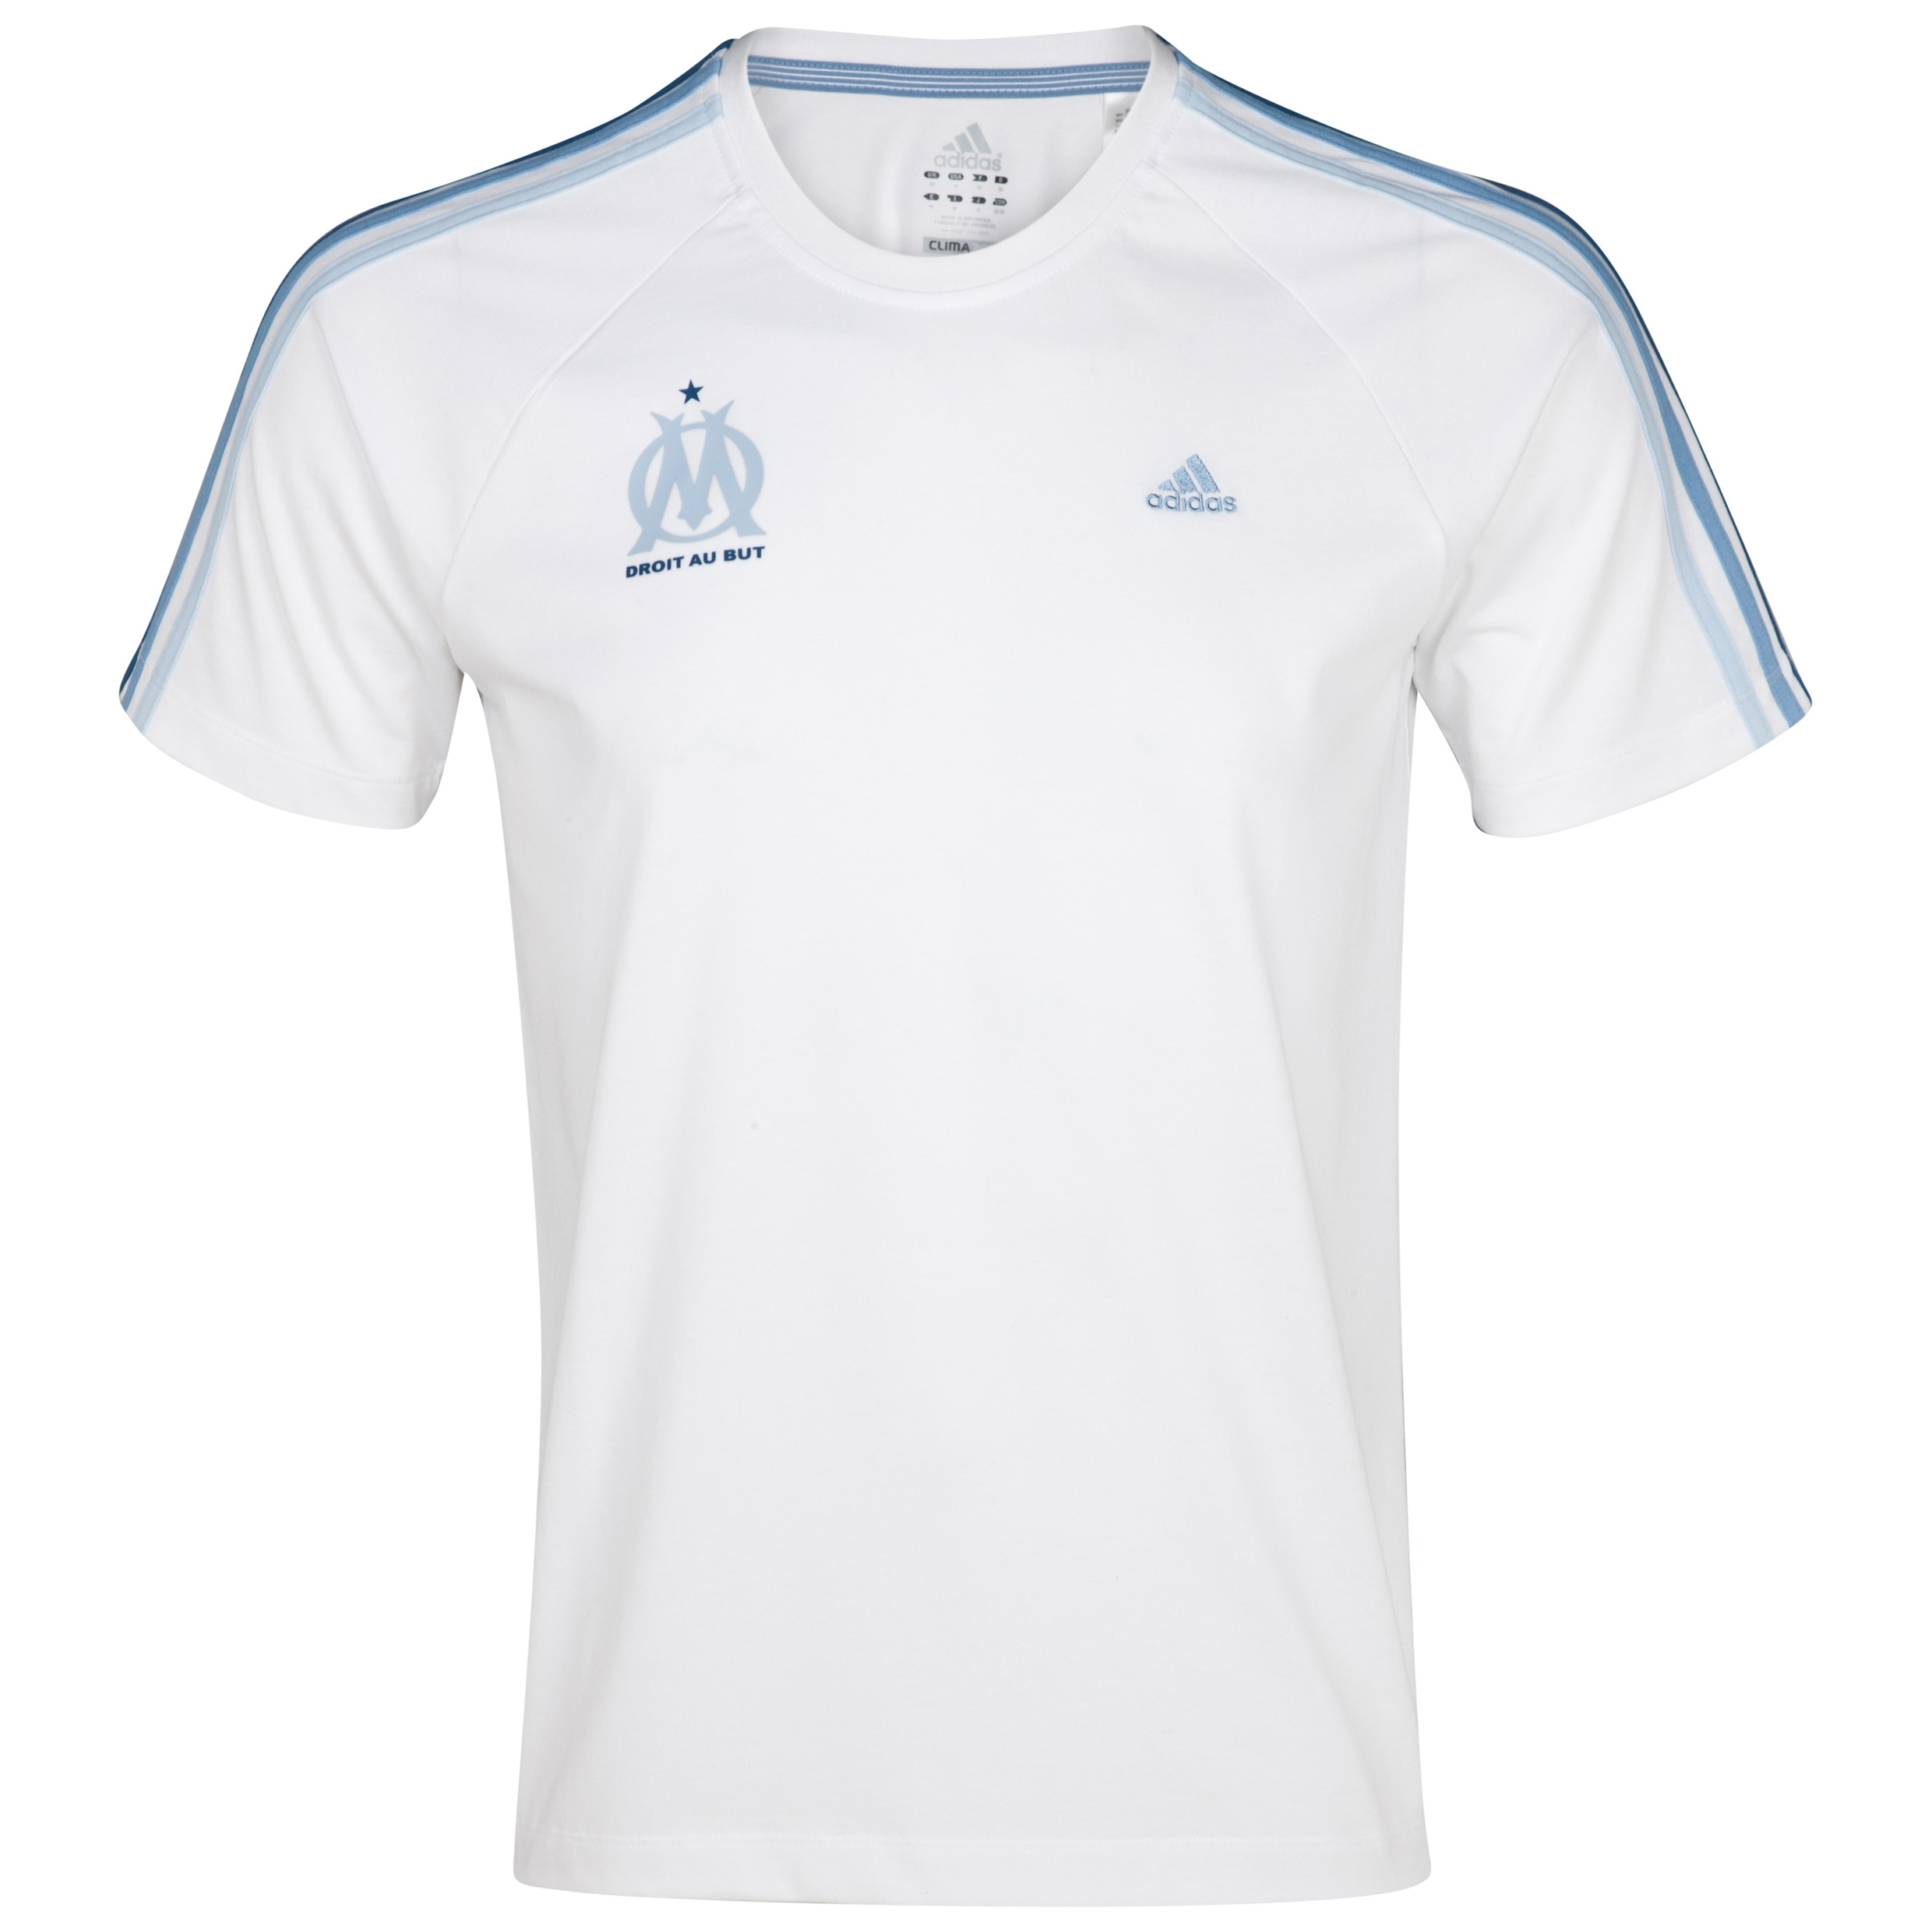 Olympique de Marseille Lifestyle T-Shirt - White